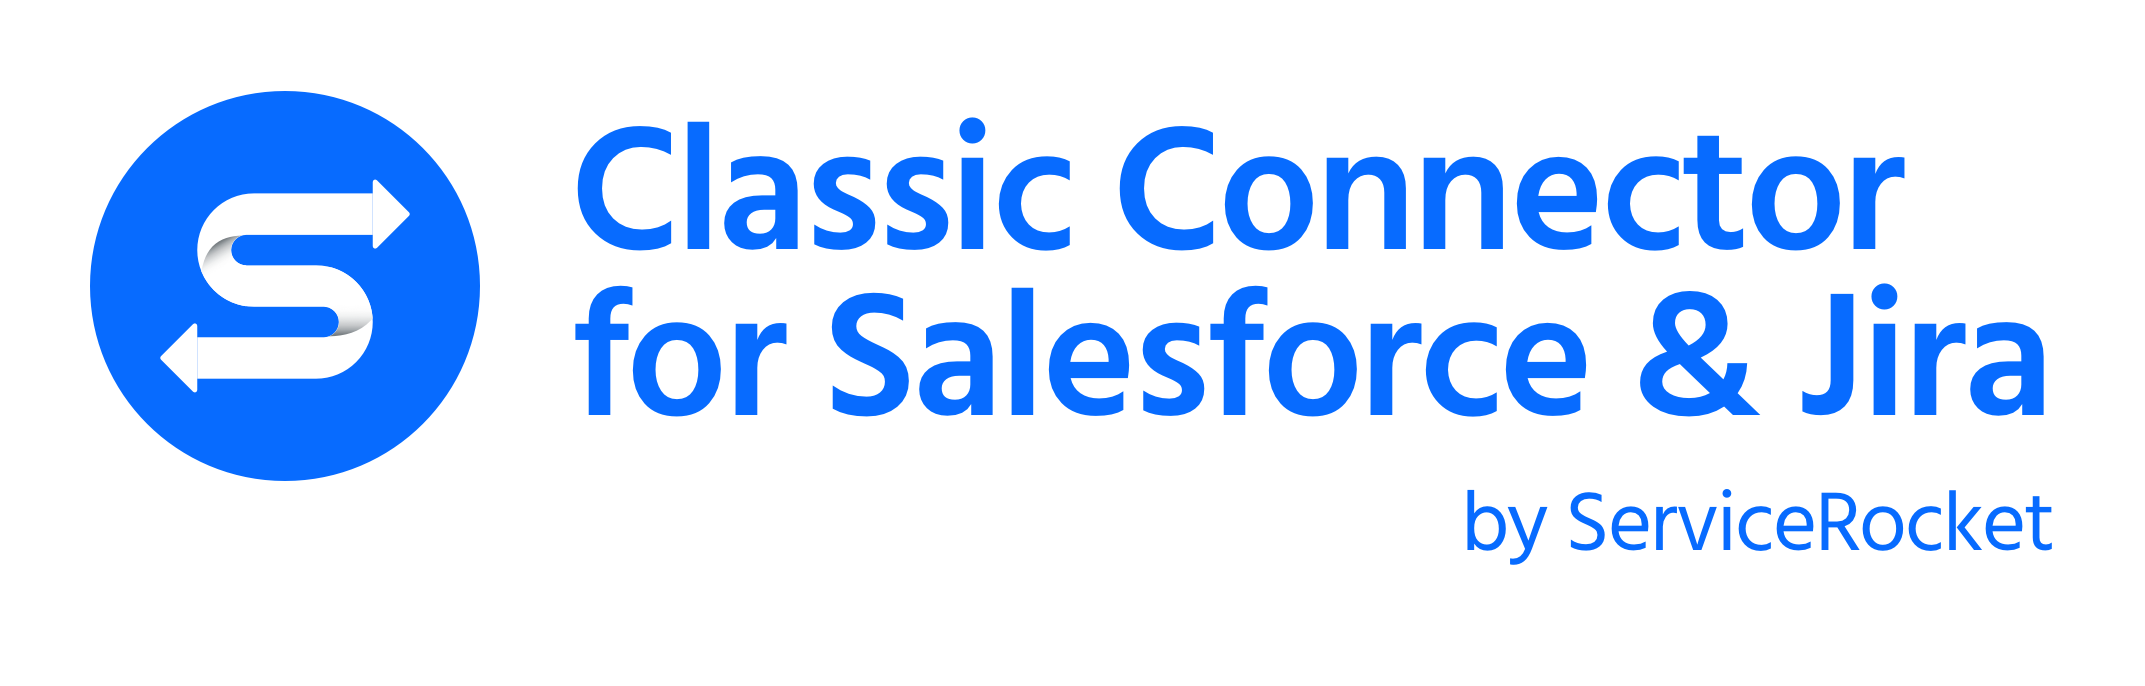 Classic Connector for Salesforce and Jira